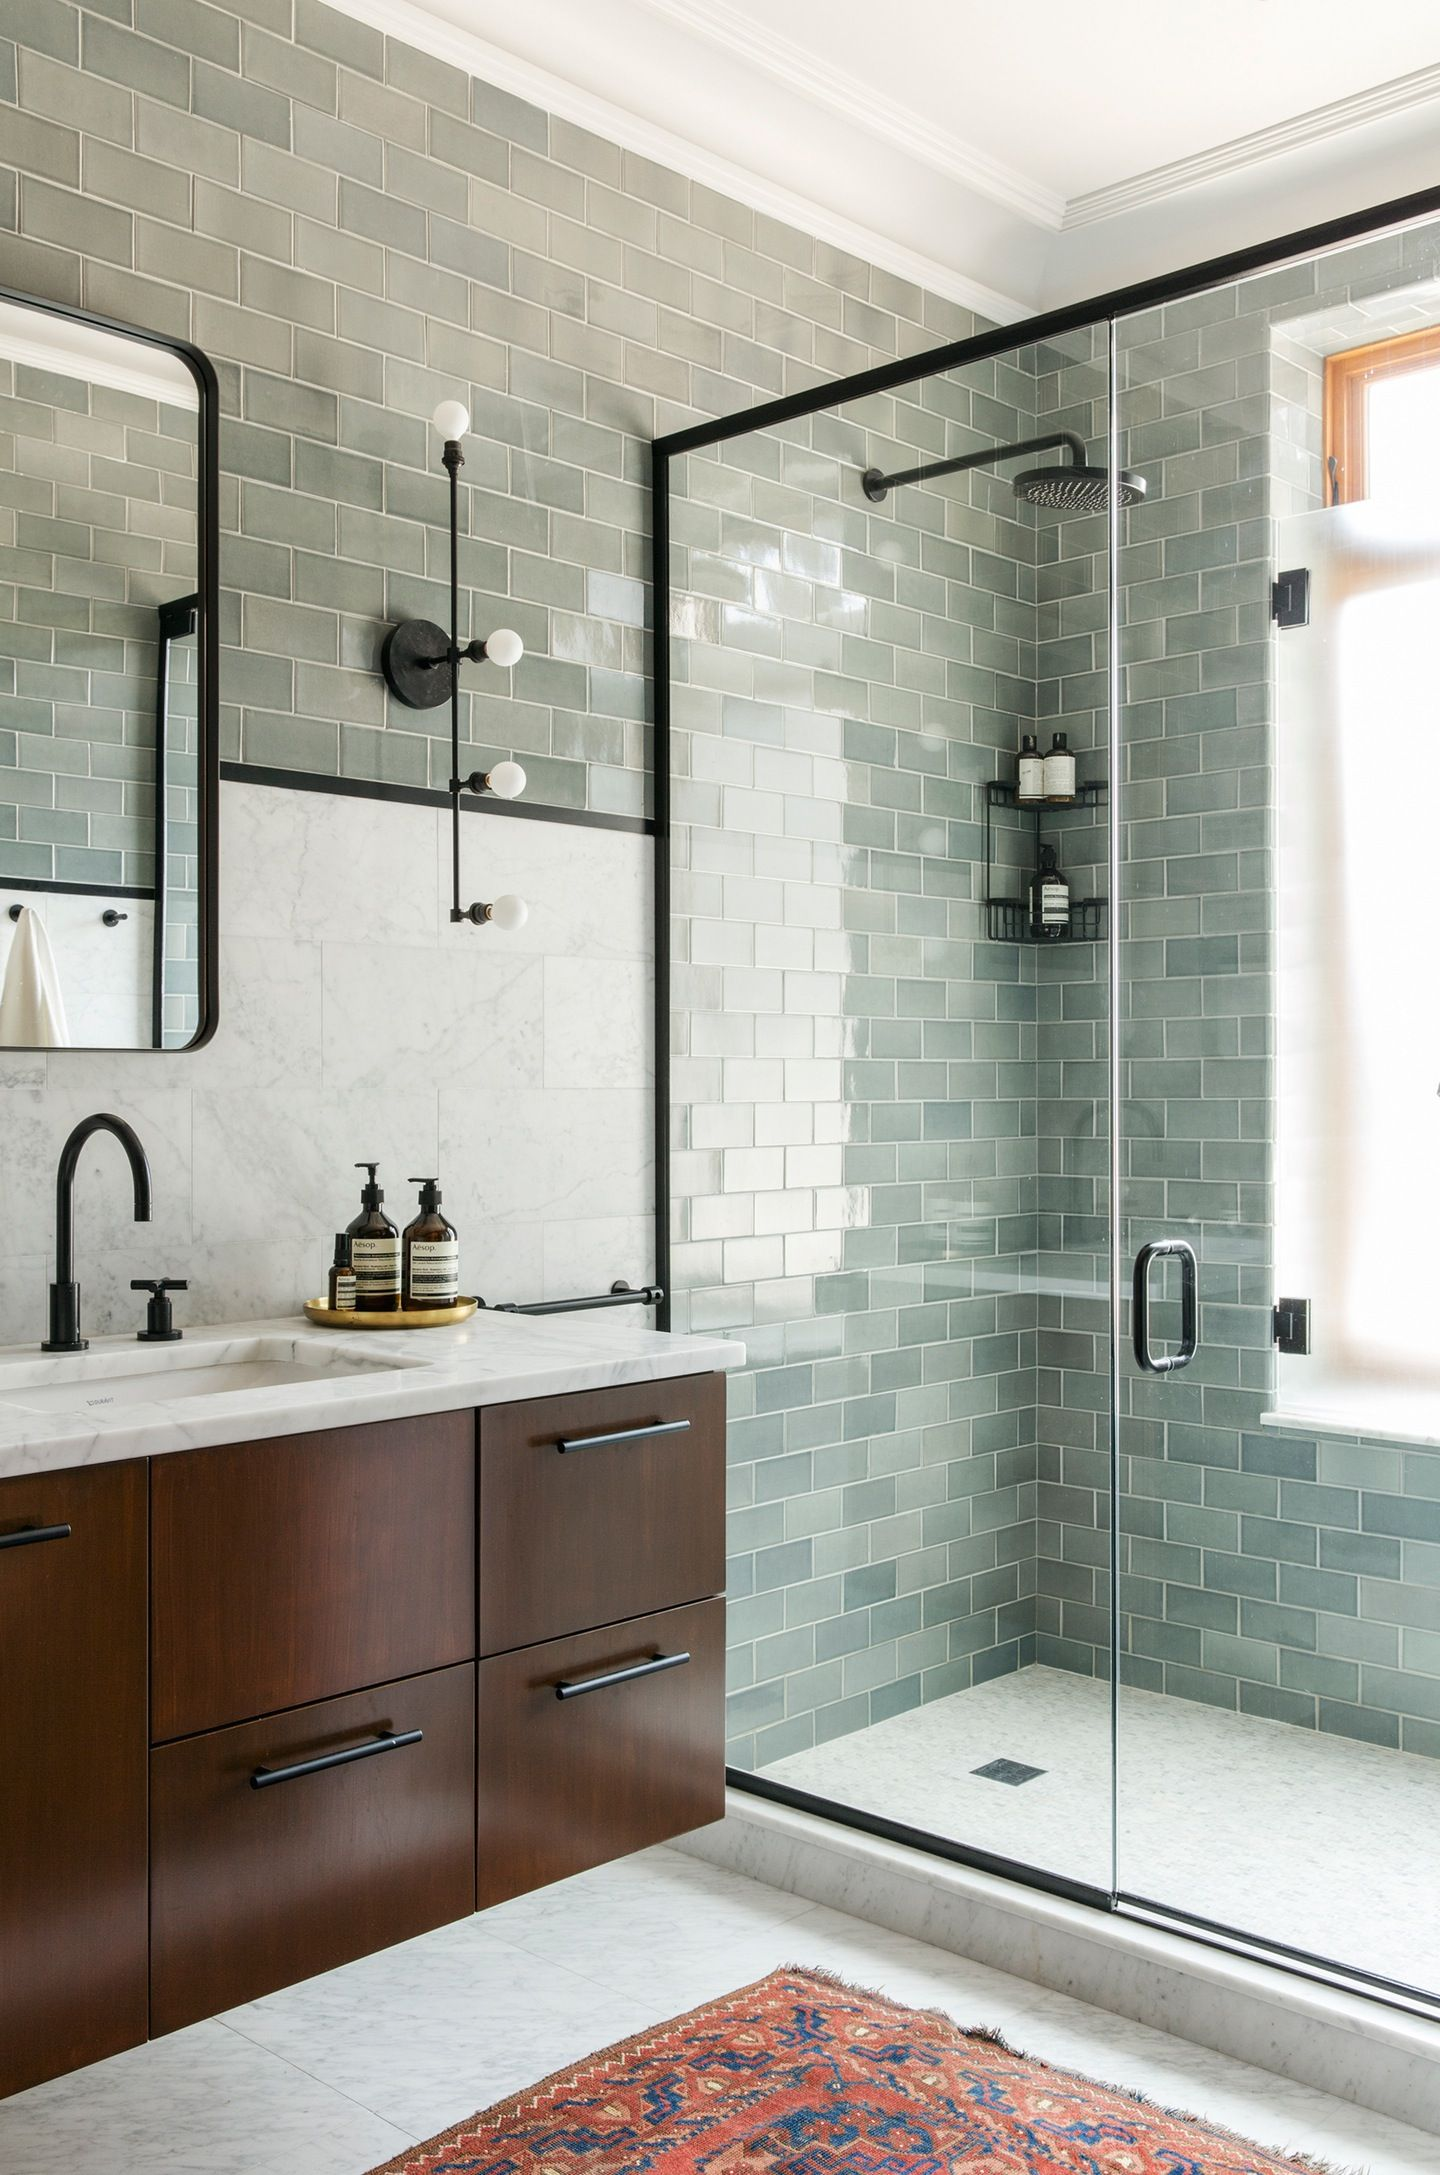 20 bathroom trends that will be huge in 2017 | bald hairstyles